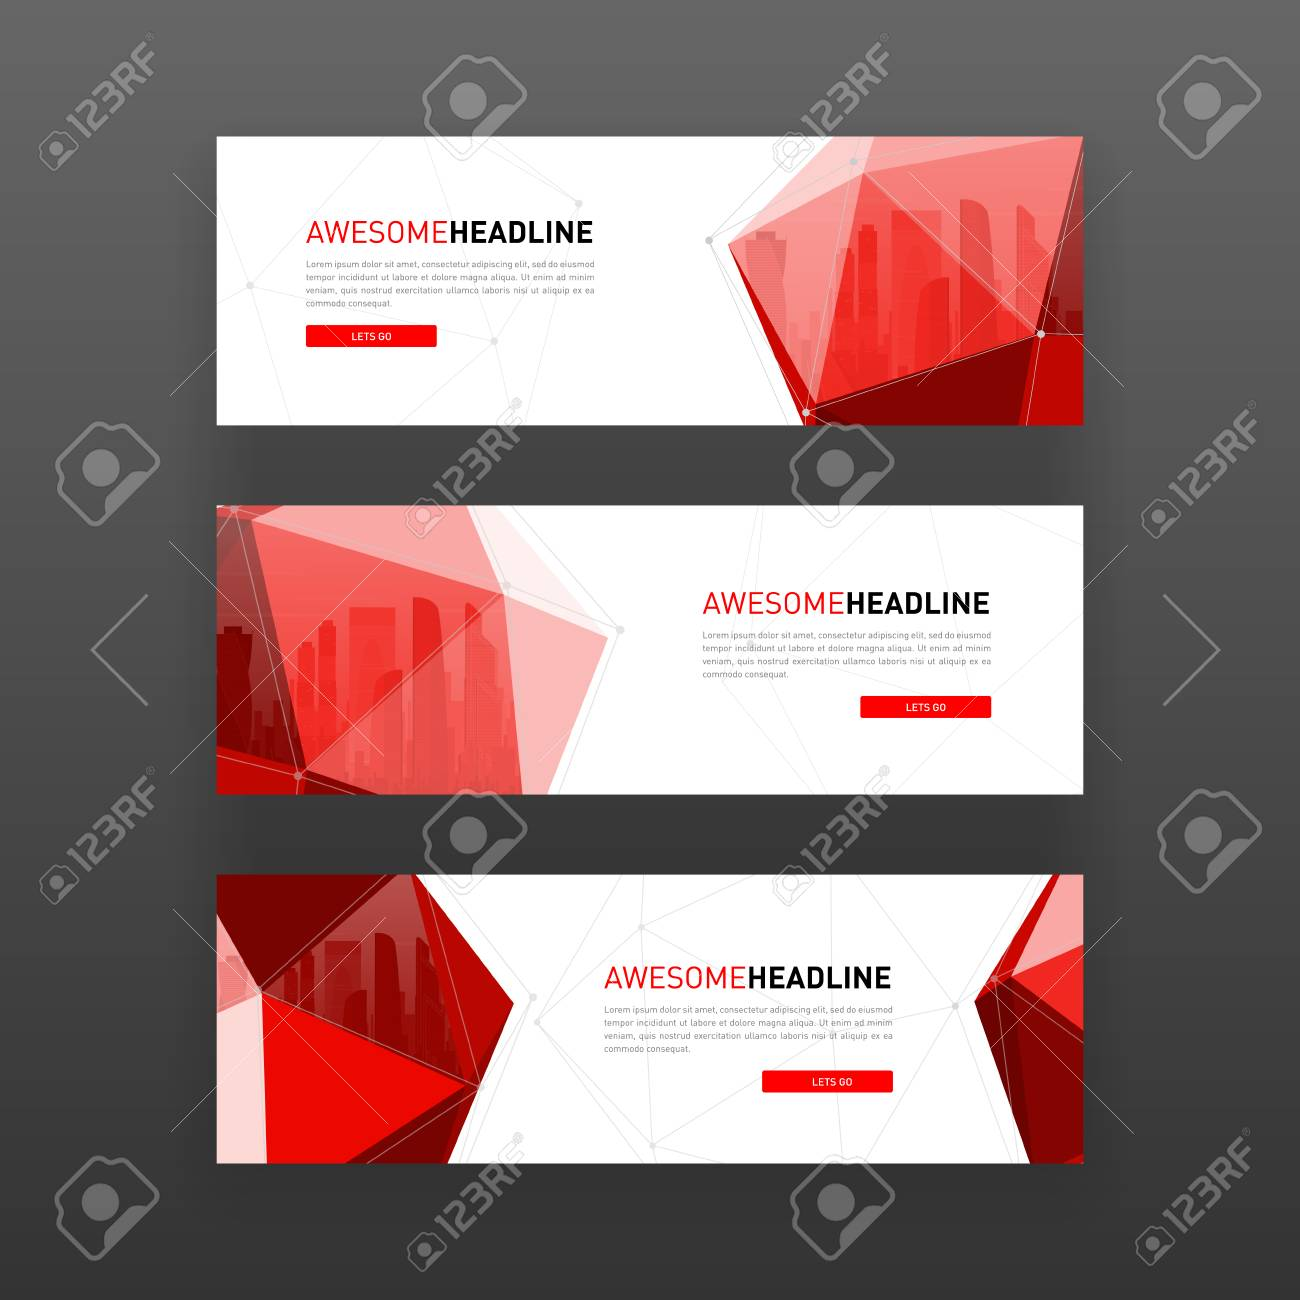 3d low poly solid abstract corporate banner or web slideshow